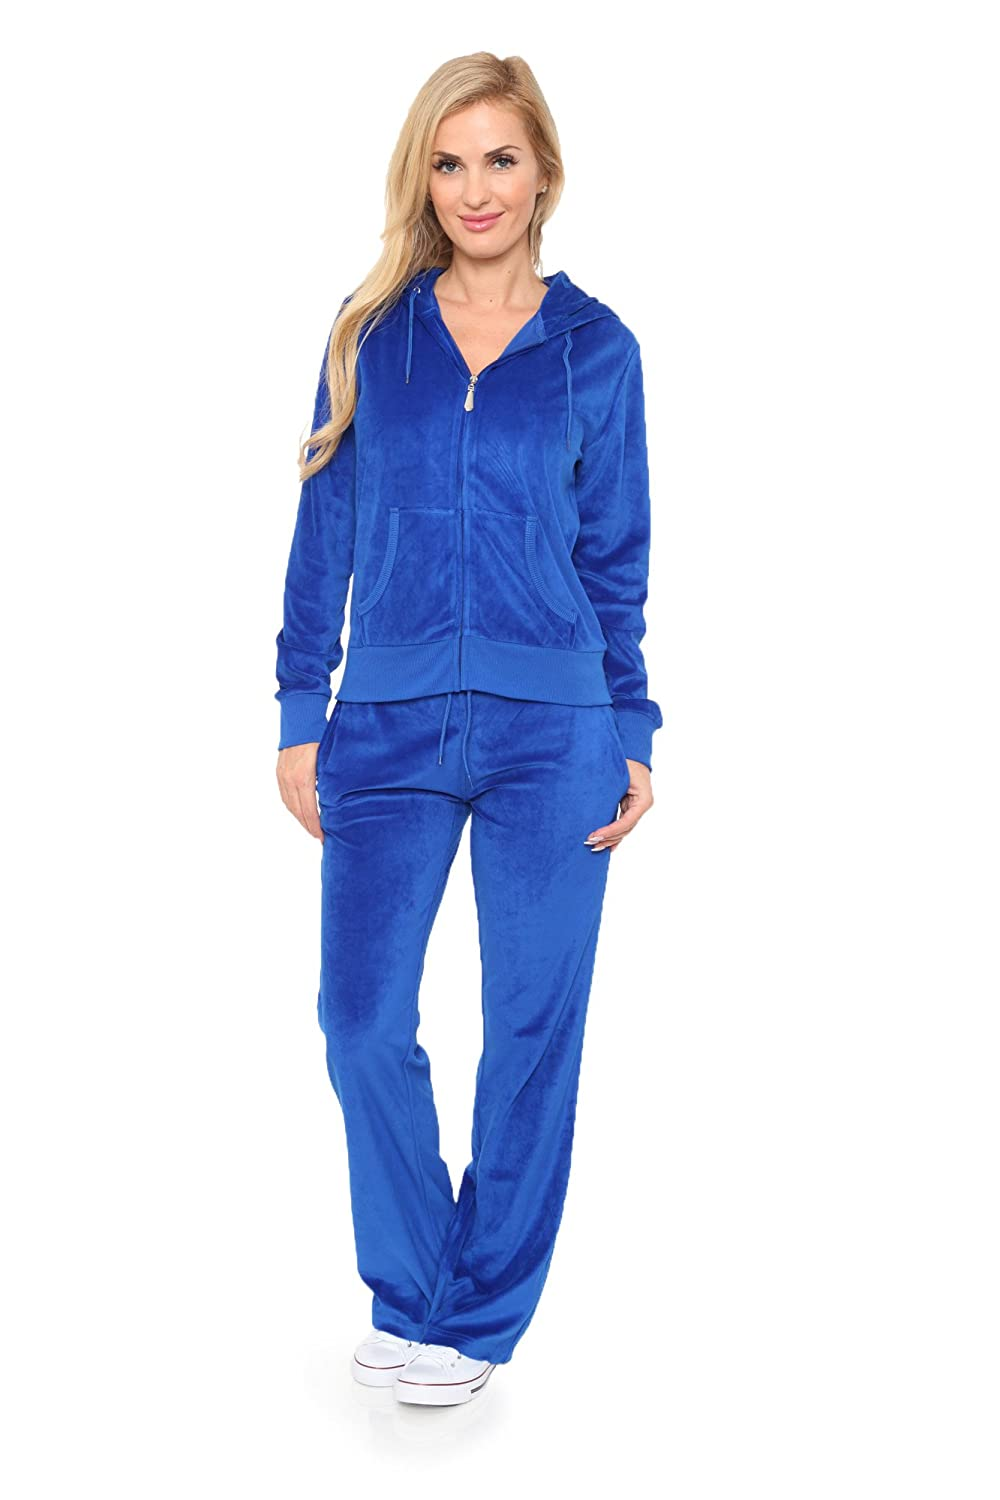 MW WM Womens Comfortable Stylish Velour 2 Piece Tracksuit Set 2828-06/M